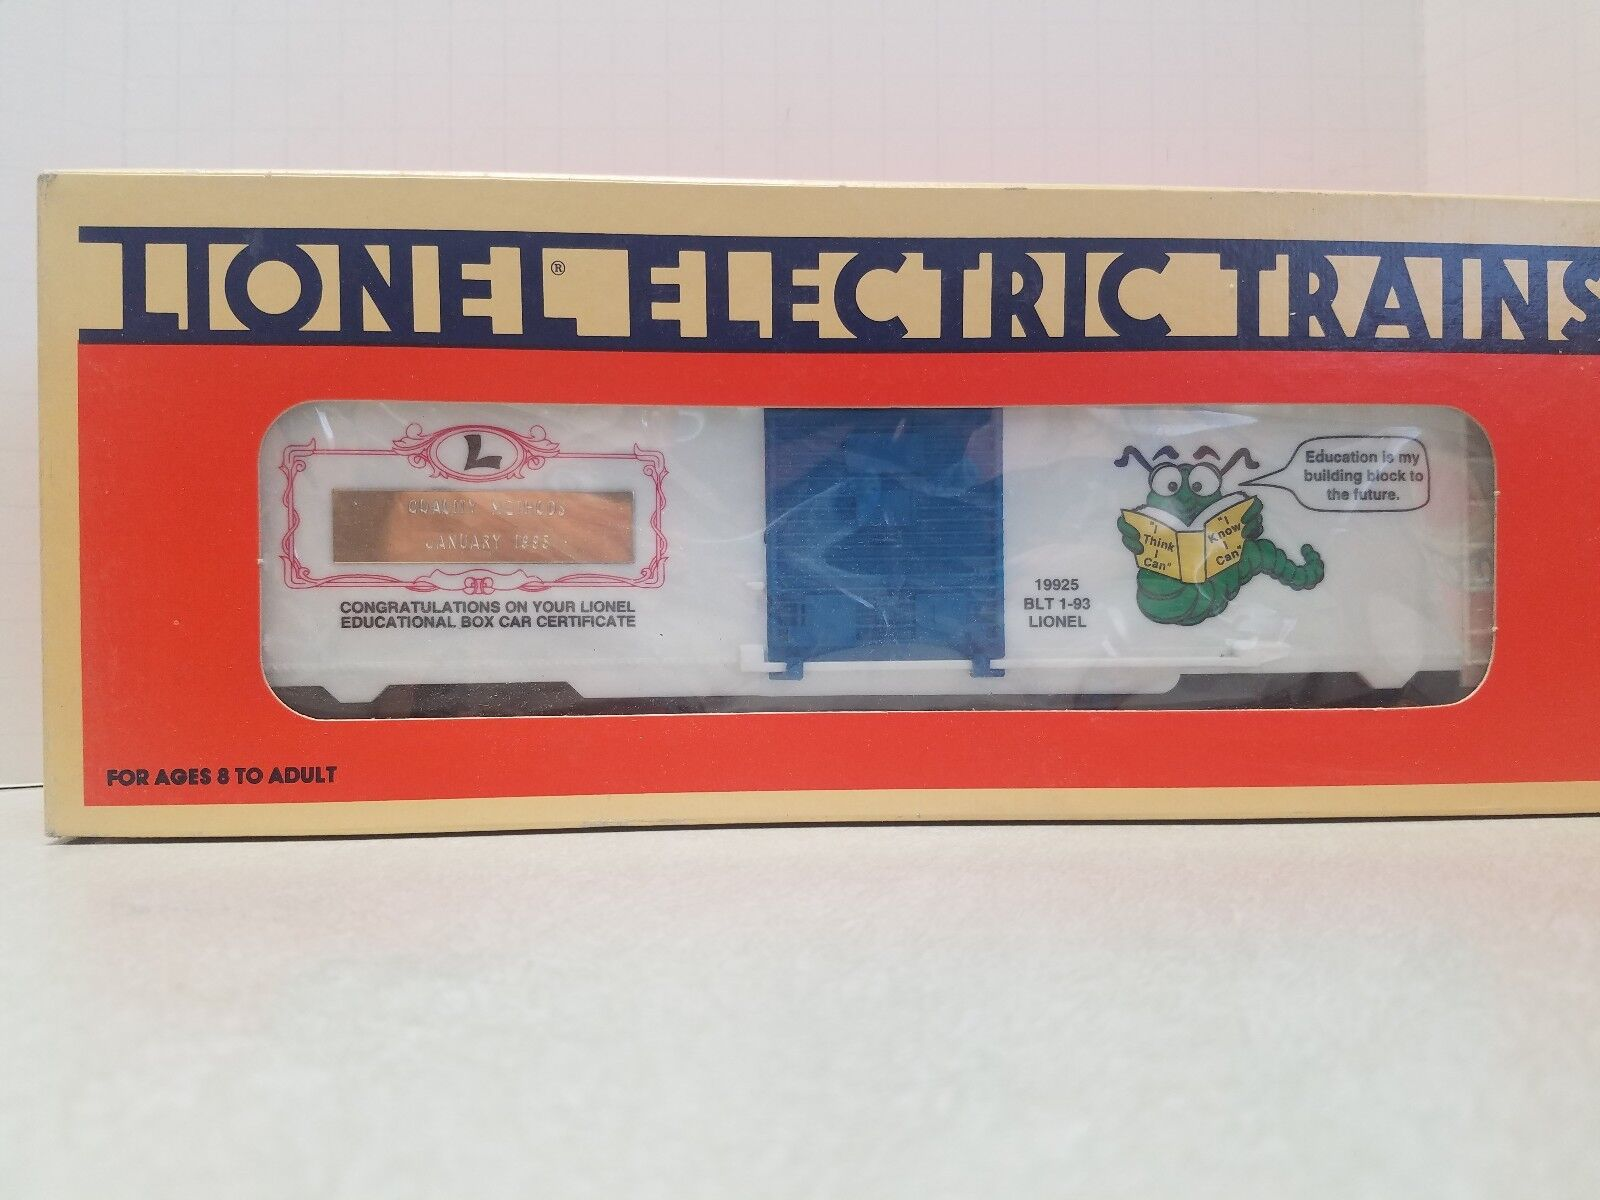 Lionel Learning Center Box Car - QUALITY METHODS VERSION